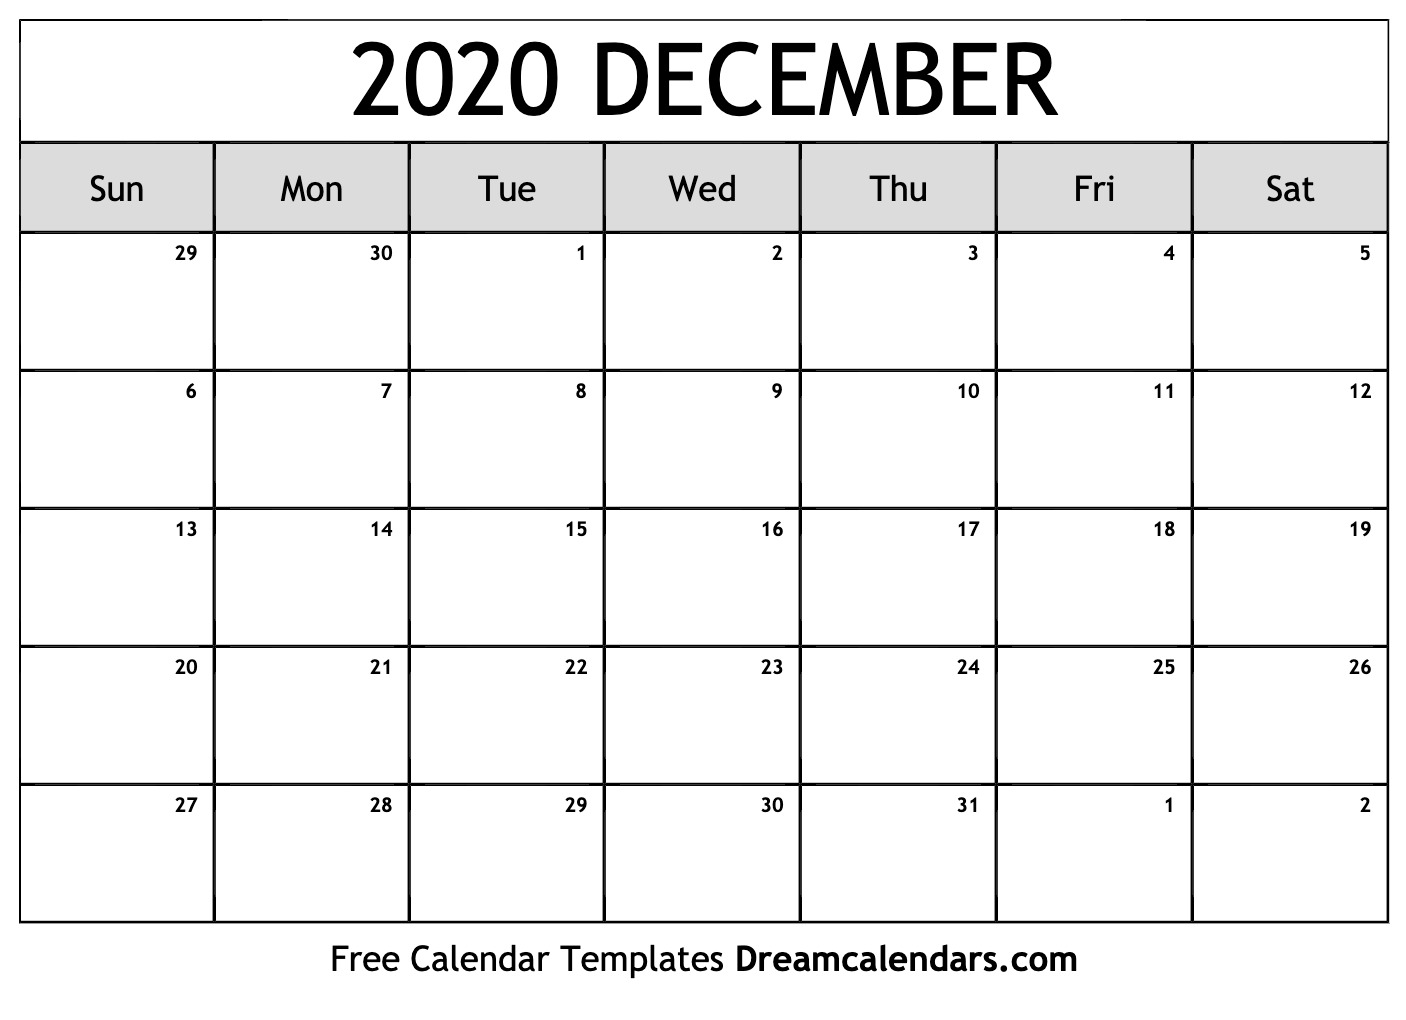 photograph relating to Printable 2020 Calendar referred to as December 2020 Calendar